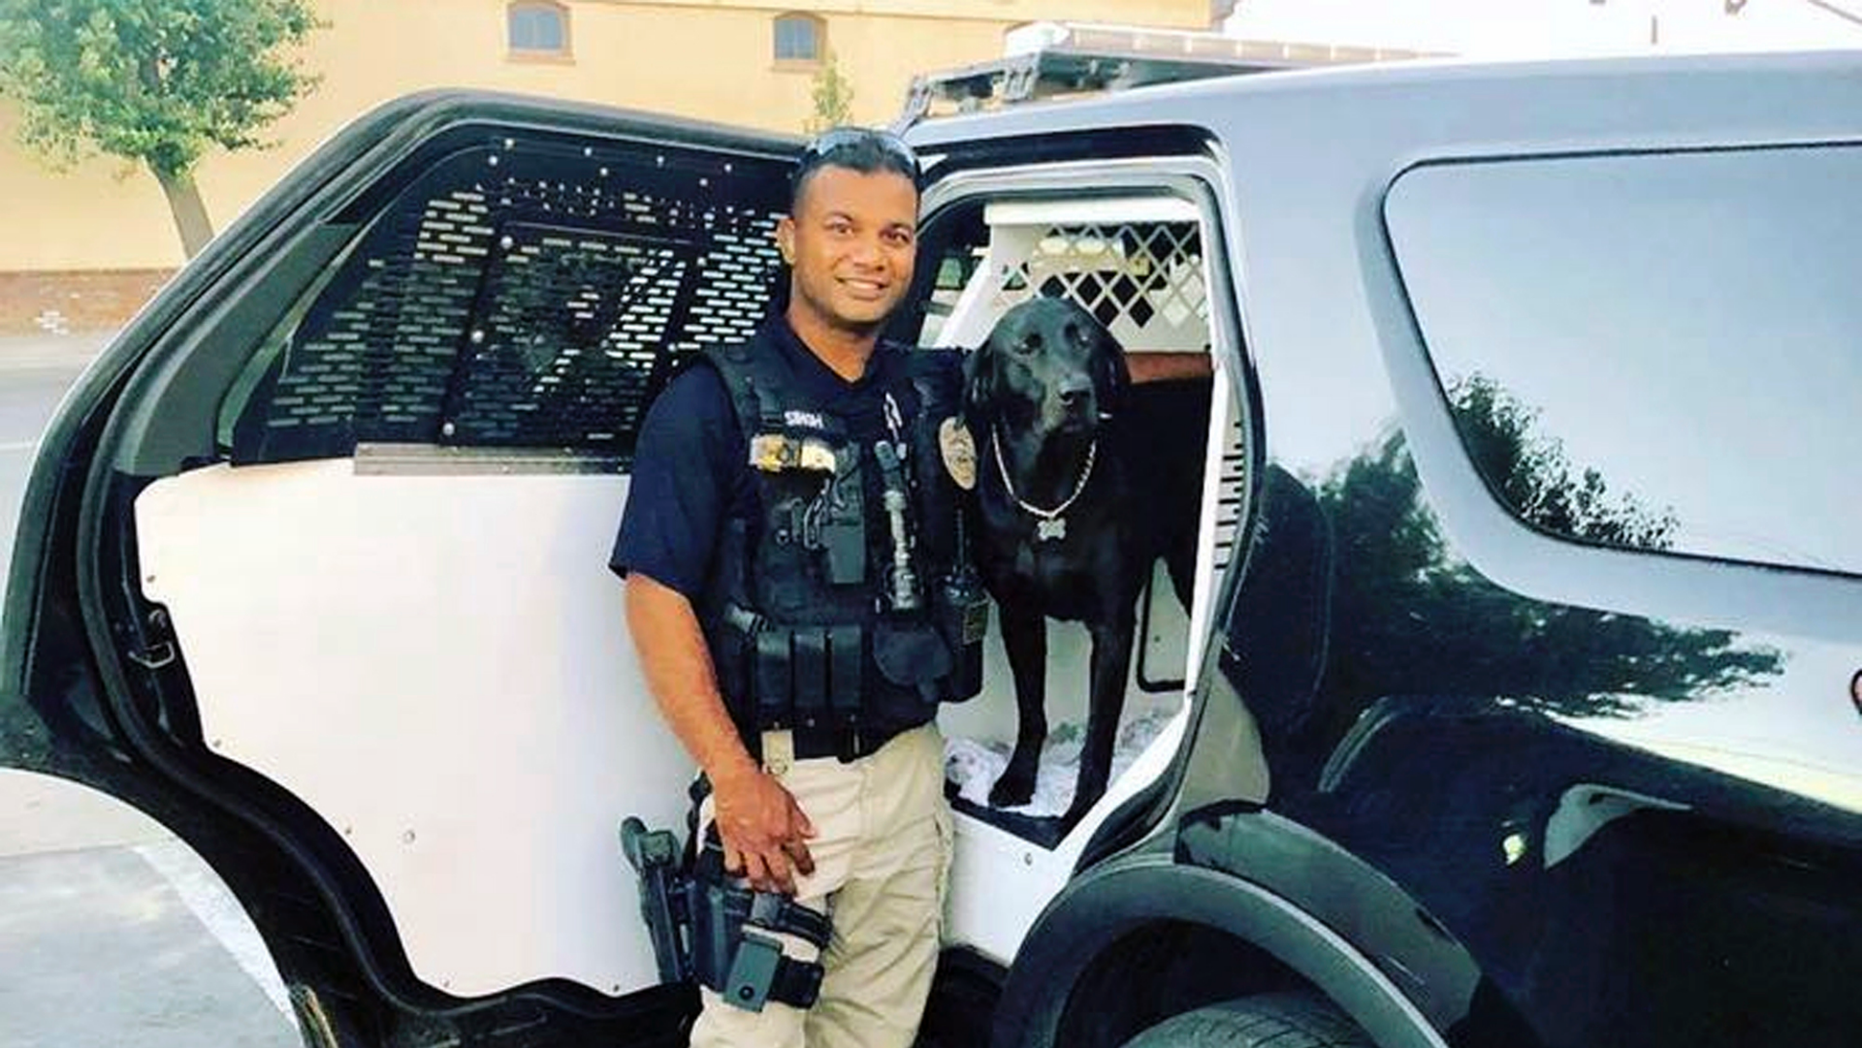 Undocumented Immigrant Suspected of Killing California Cop Has Been Arrested: Authorities